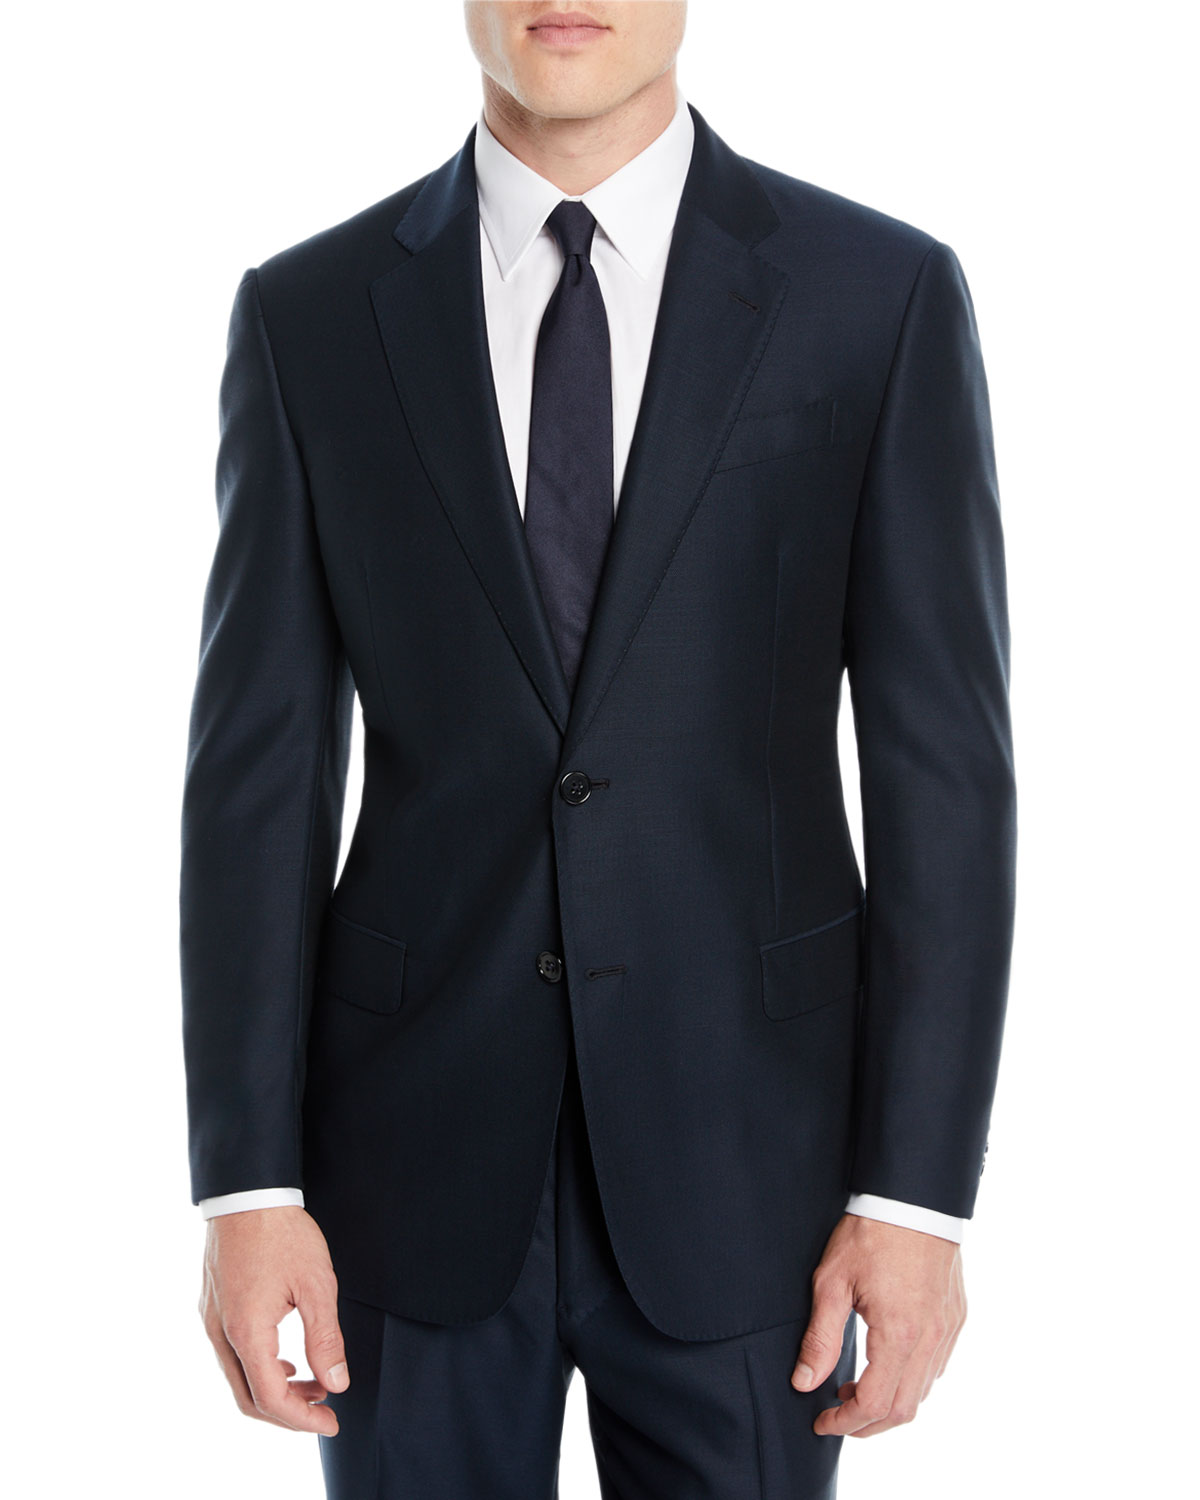 Men'S Solid Wool Two-Piece Suit, Teal